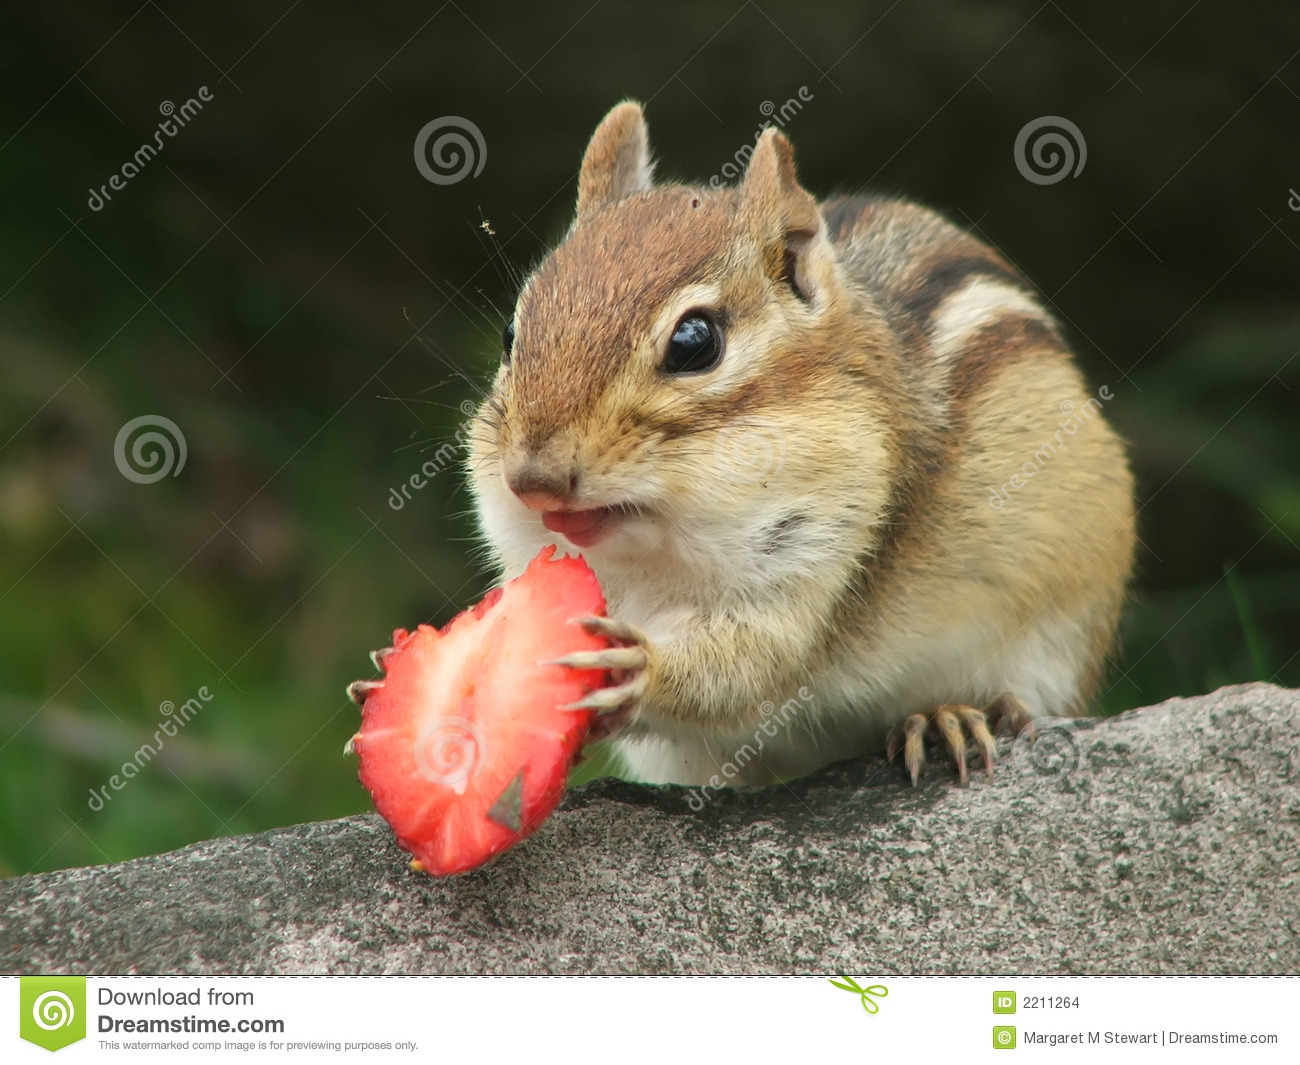 Cute Couple Cartoon Wallpaper Download Chipmunk With Strawberry Stock Images Image 2211264